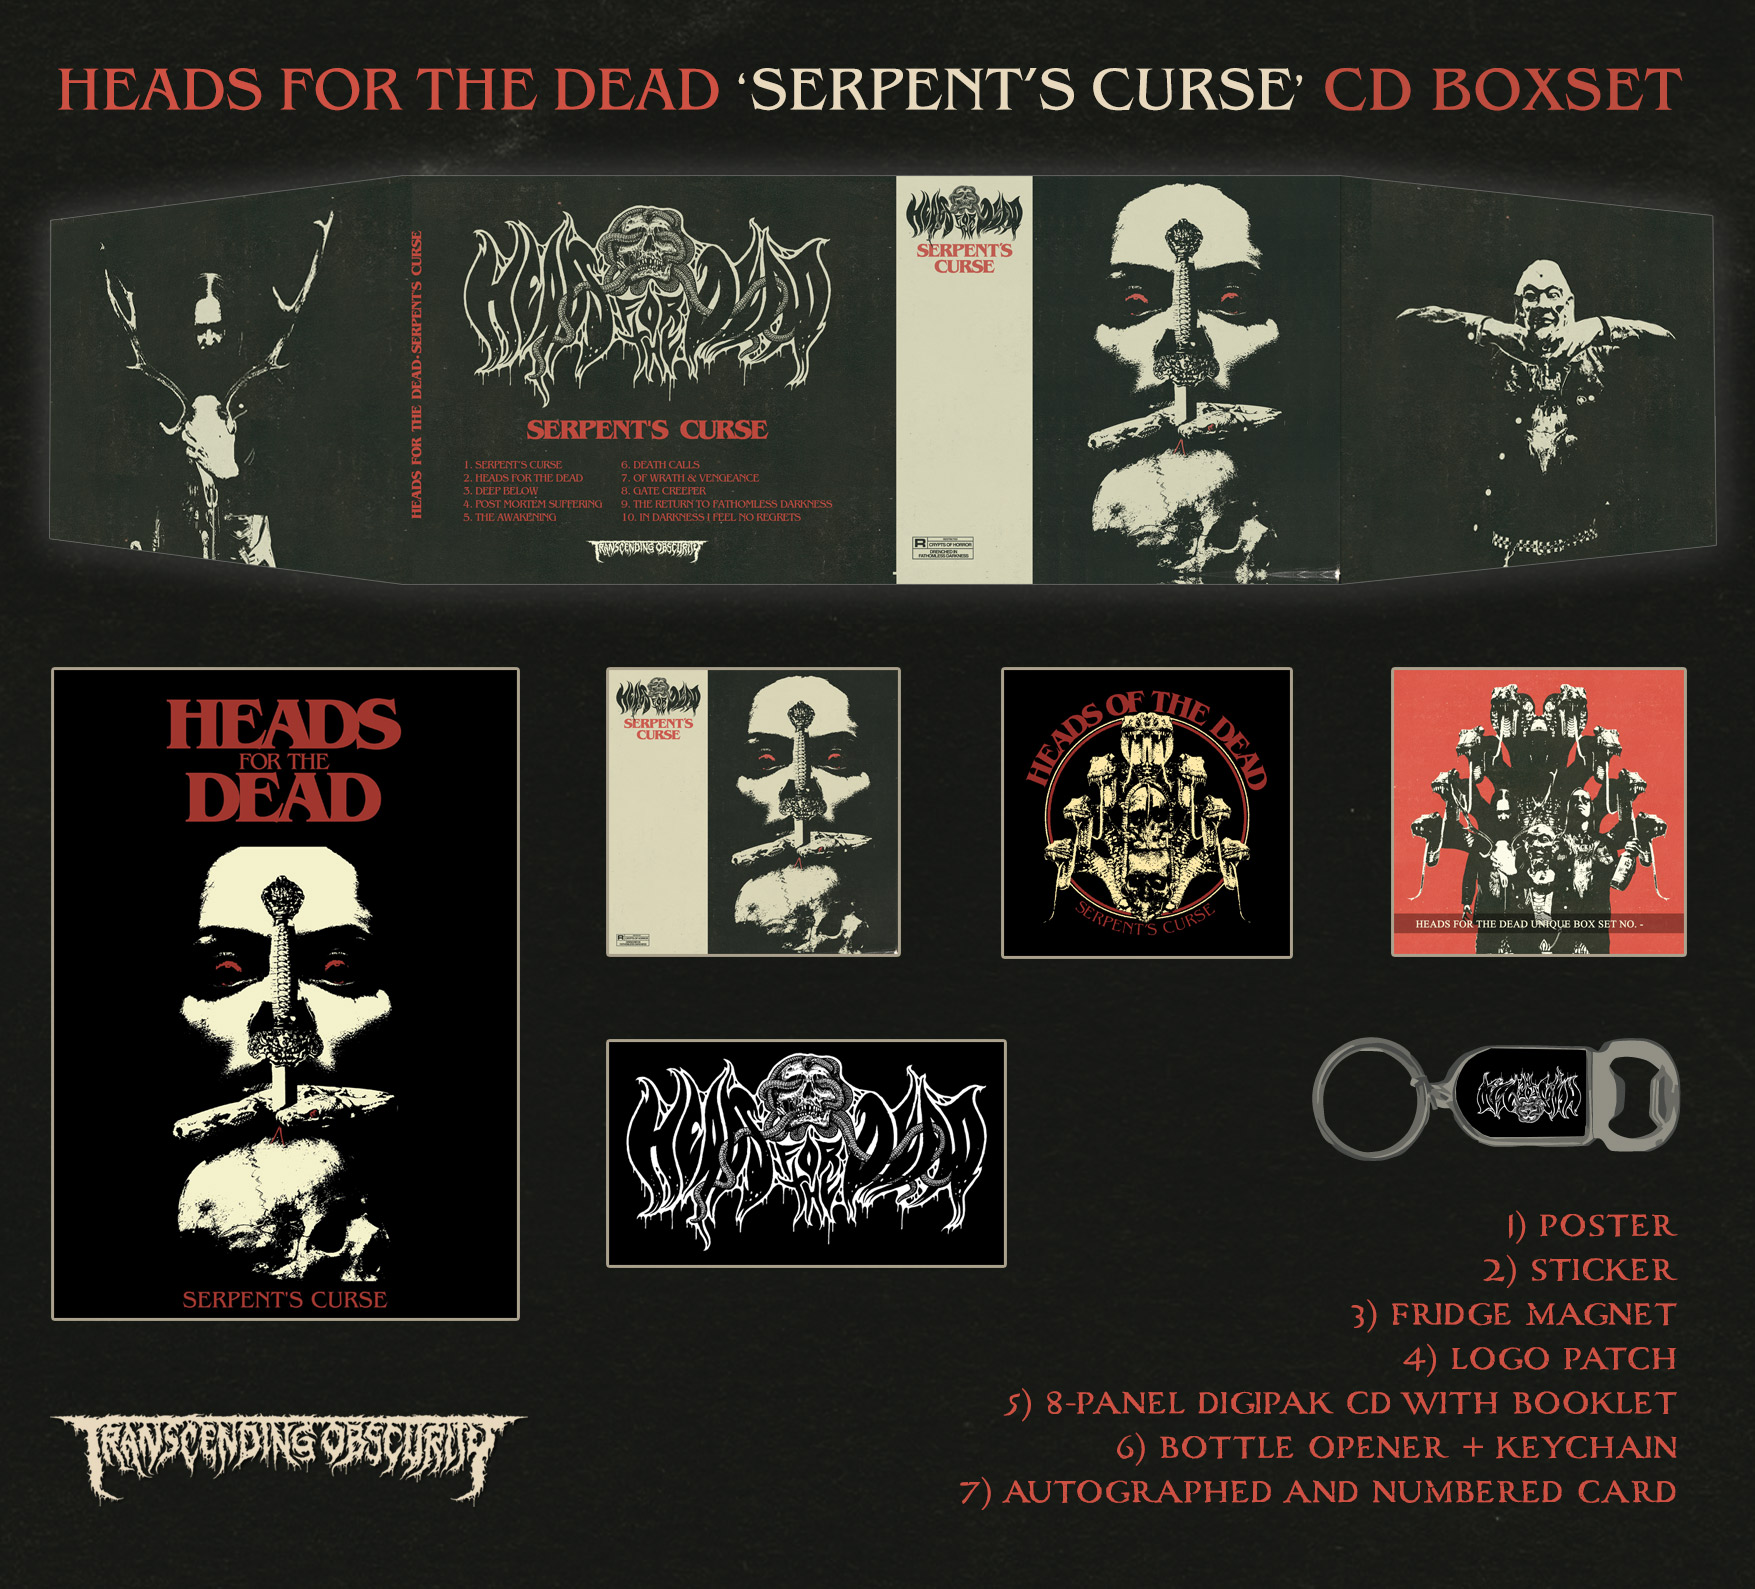 HEAD FOR THE DEAD - Serpent's Curse CD Box Set (Autographed and Numbered)